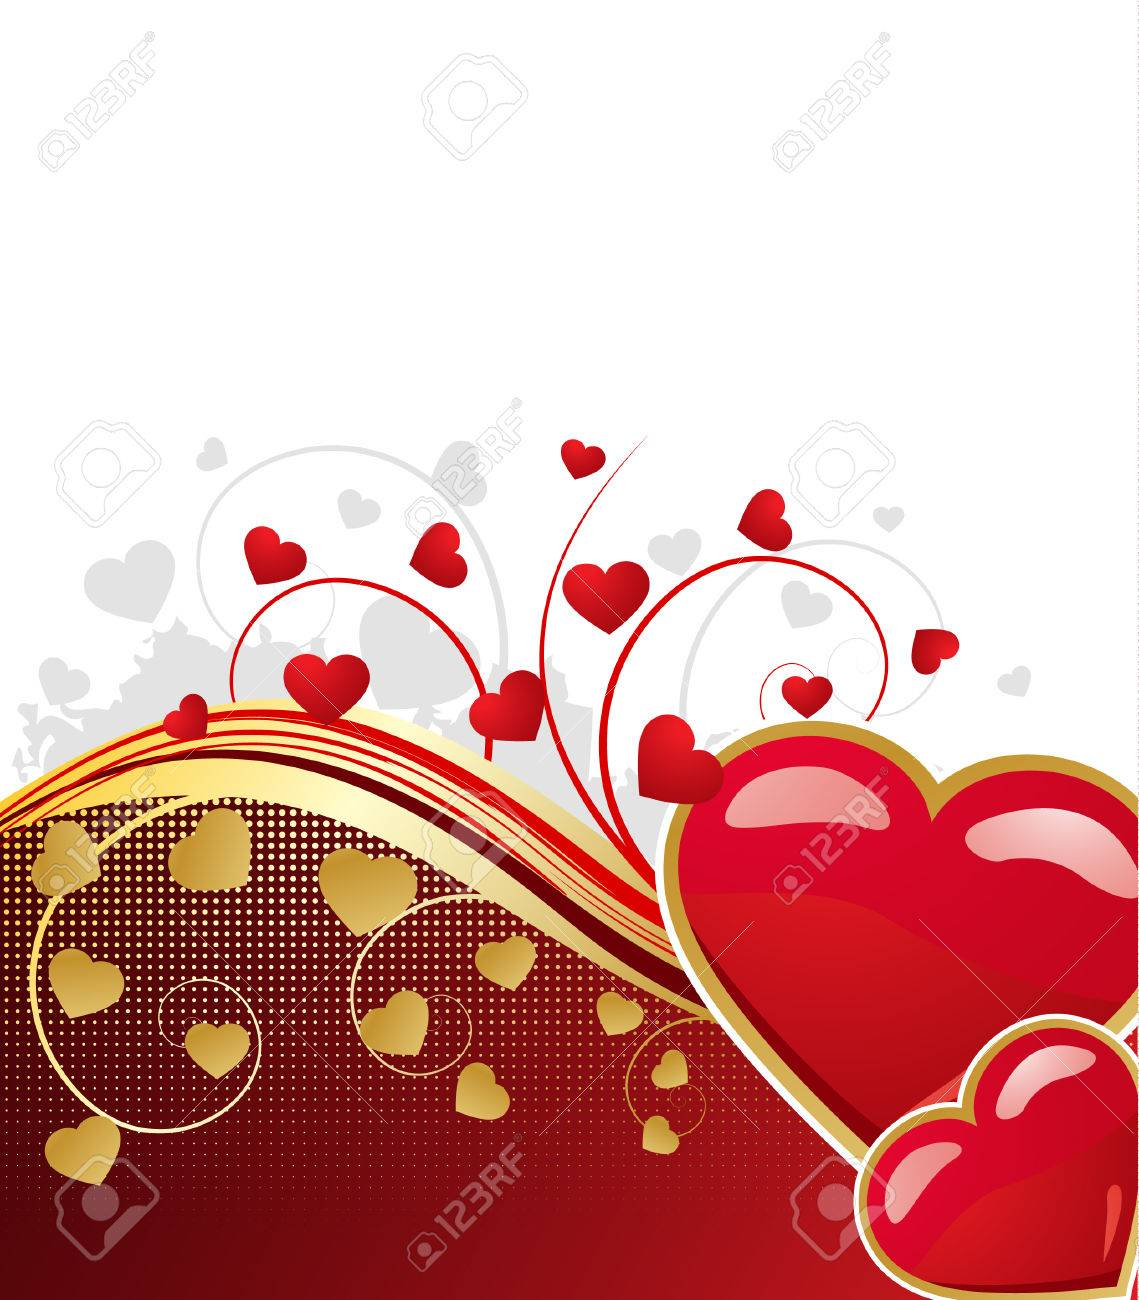 Valentine's floral background, vector illustration Stock Vector - 6132068